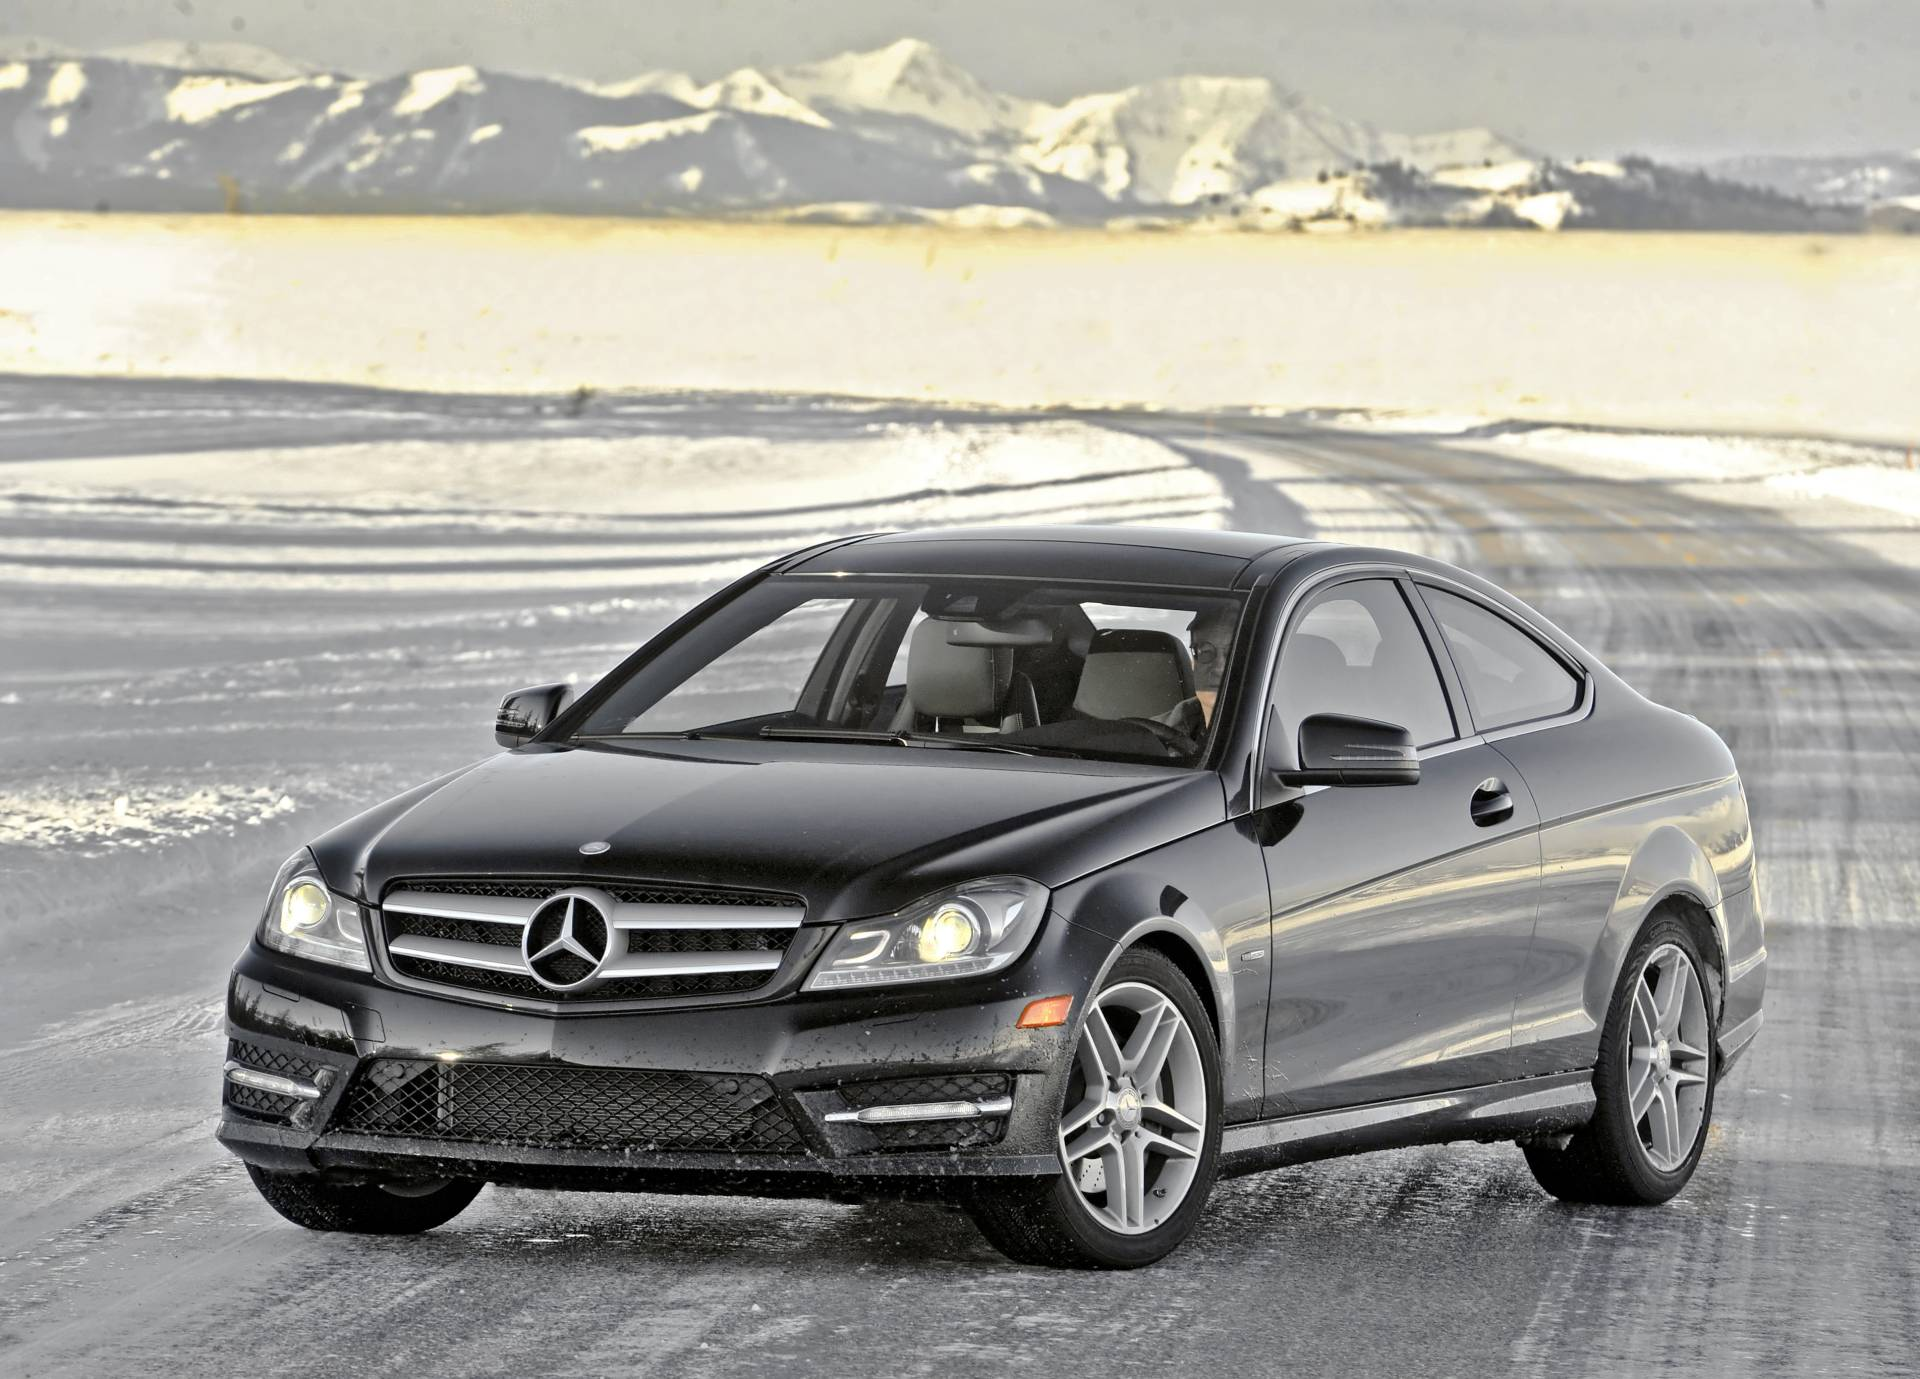 2013 mercedes benz c class. Black Bedroom Furniture Sets. Home Design Ideas